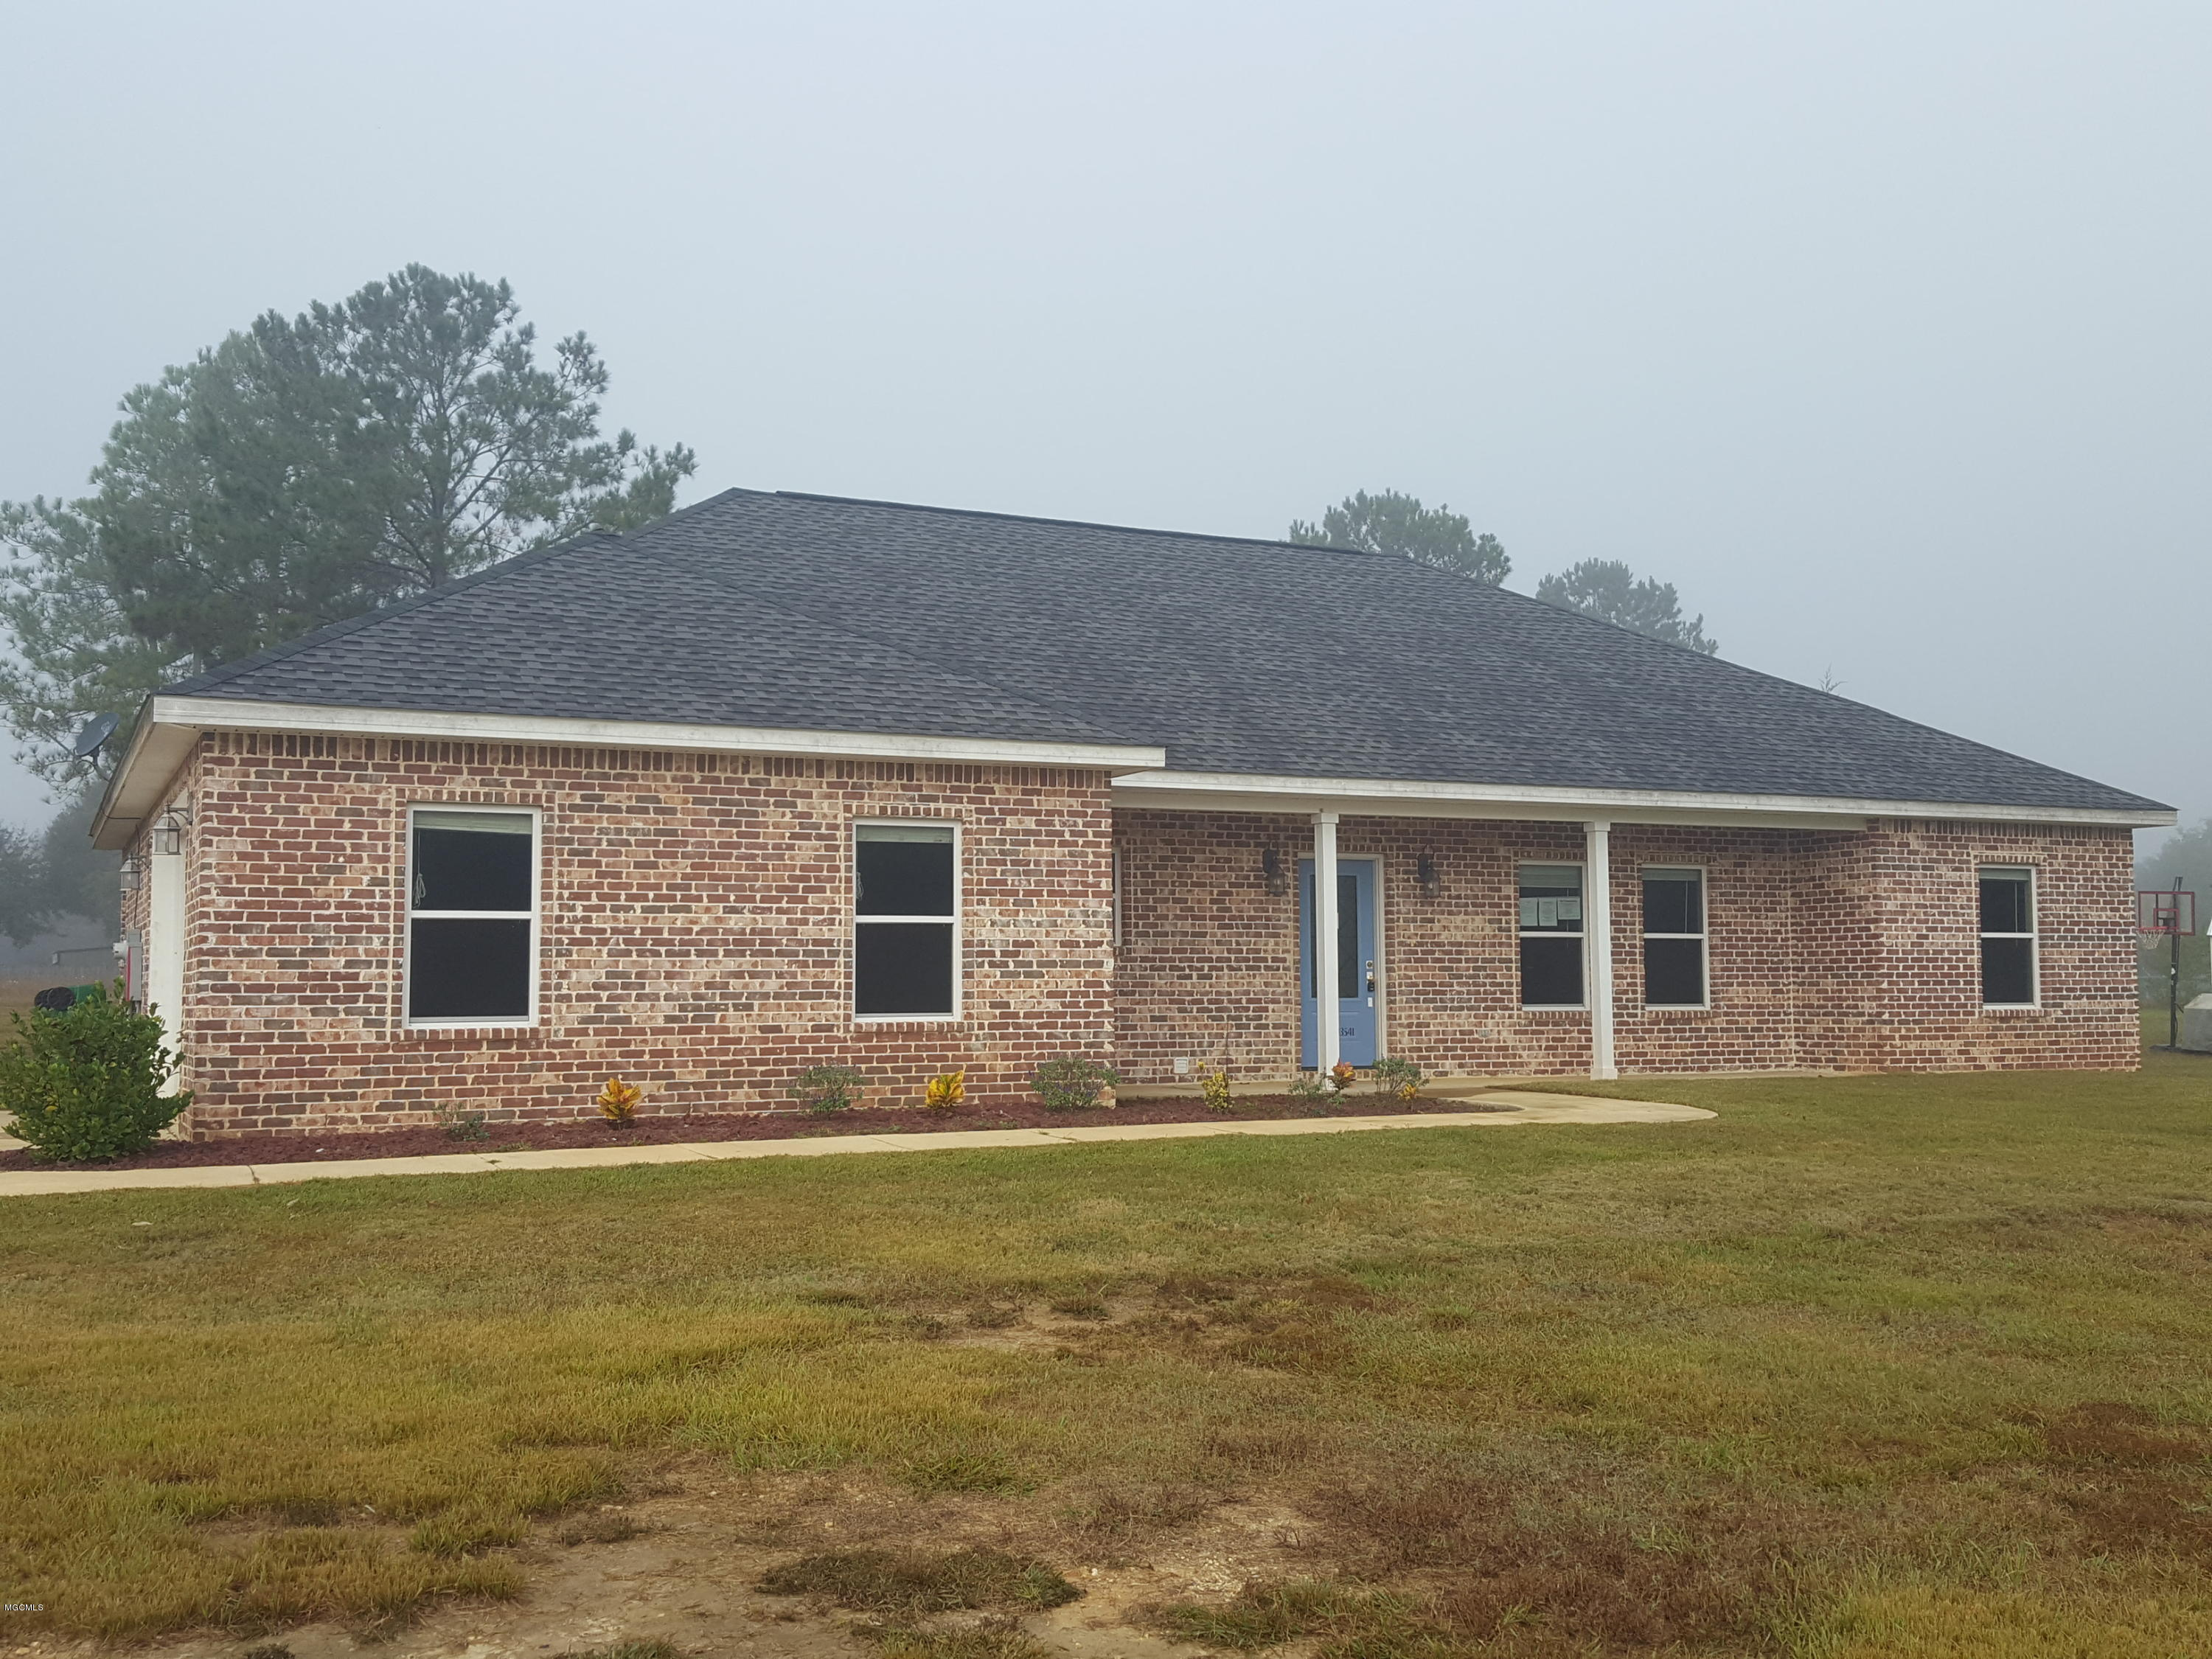 13541 Mount Pleasant Rd, Vancleave, Mississippi 39565, 3 Bedrooms Bedrooms, ,2 BathroomsBathrooms,Single-family,For Sale,Mount Pleasant,340901